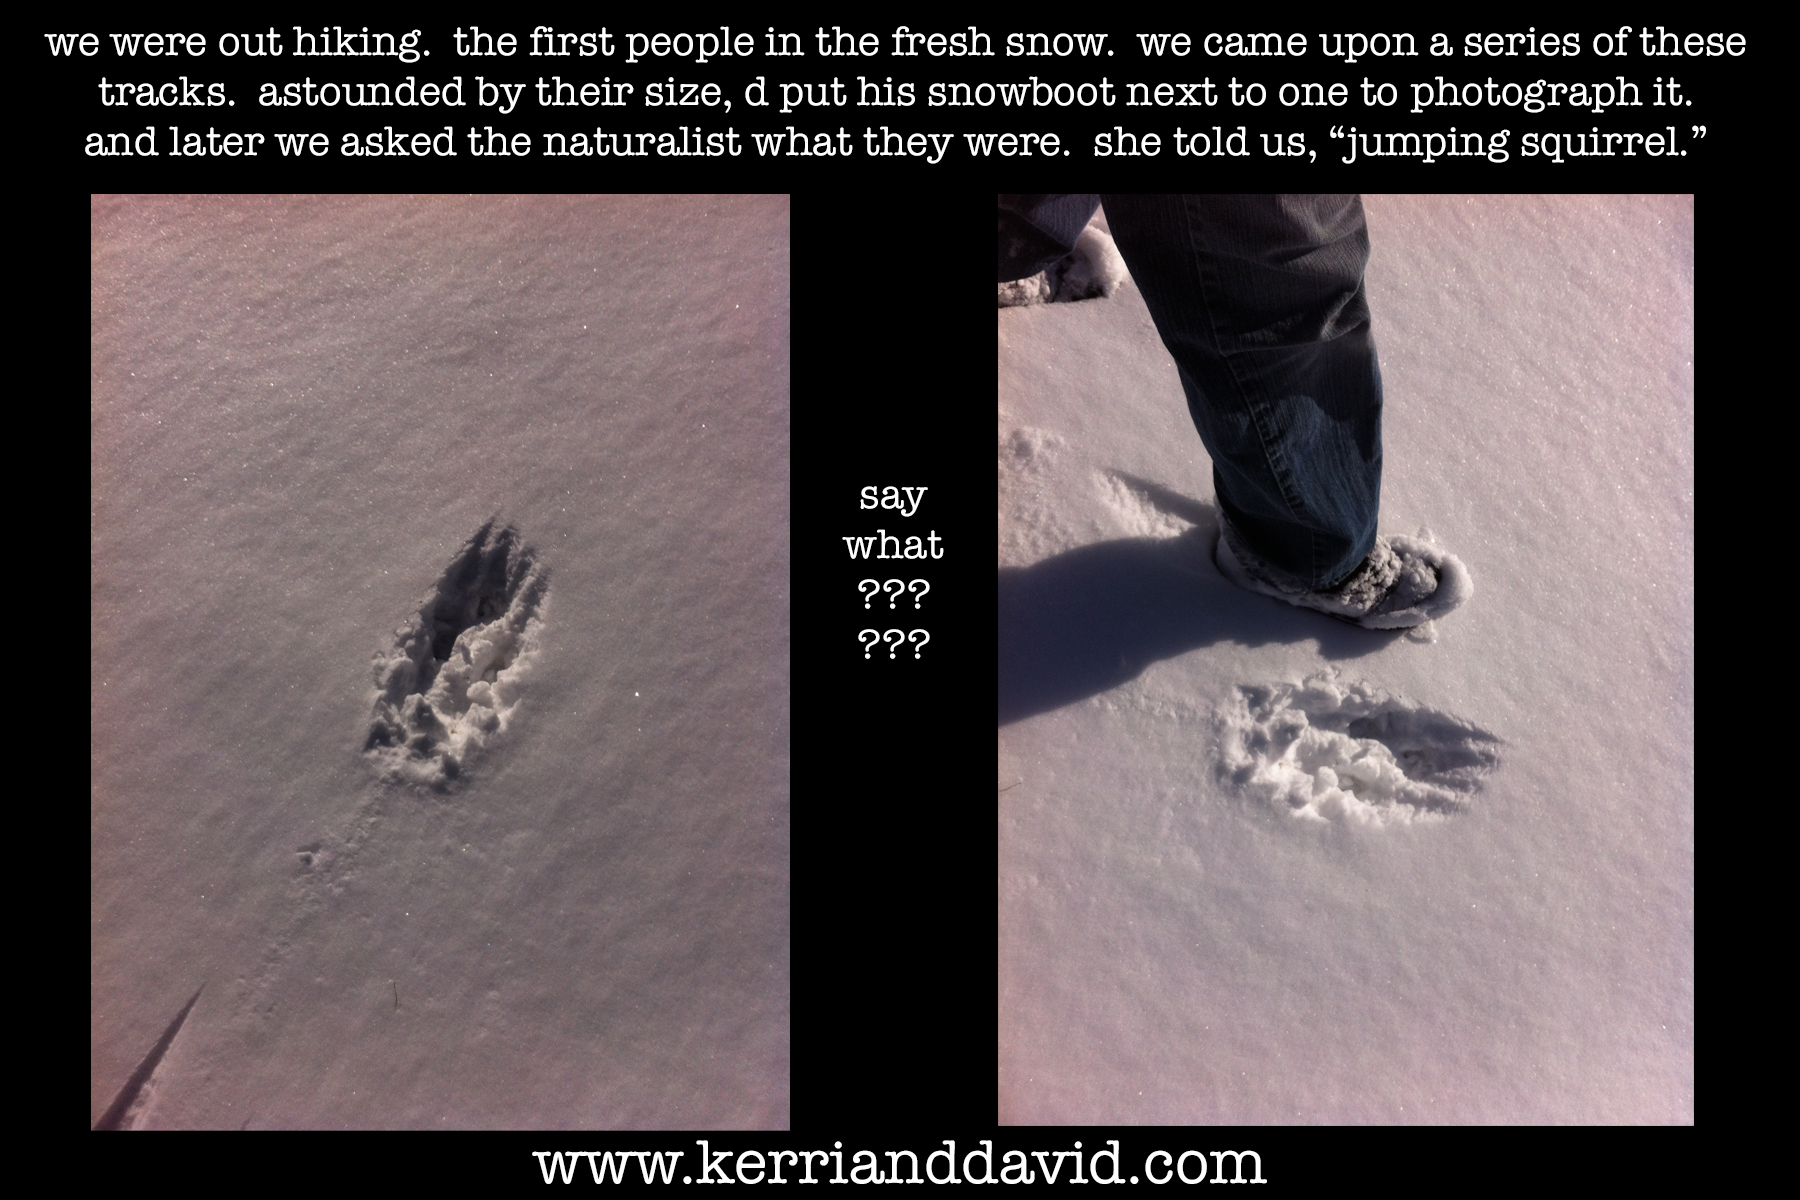 jumping squirrel tracks website box copy